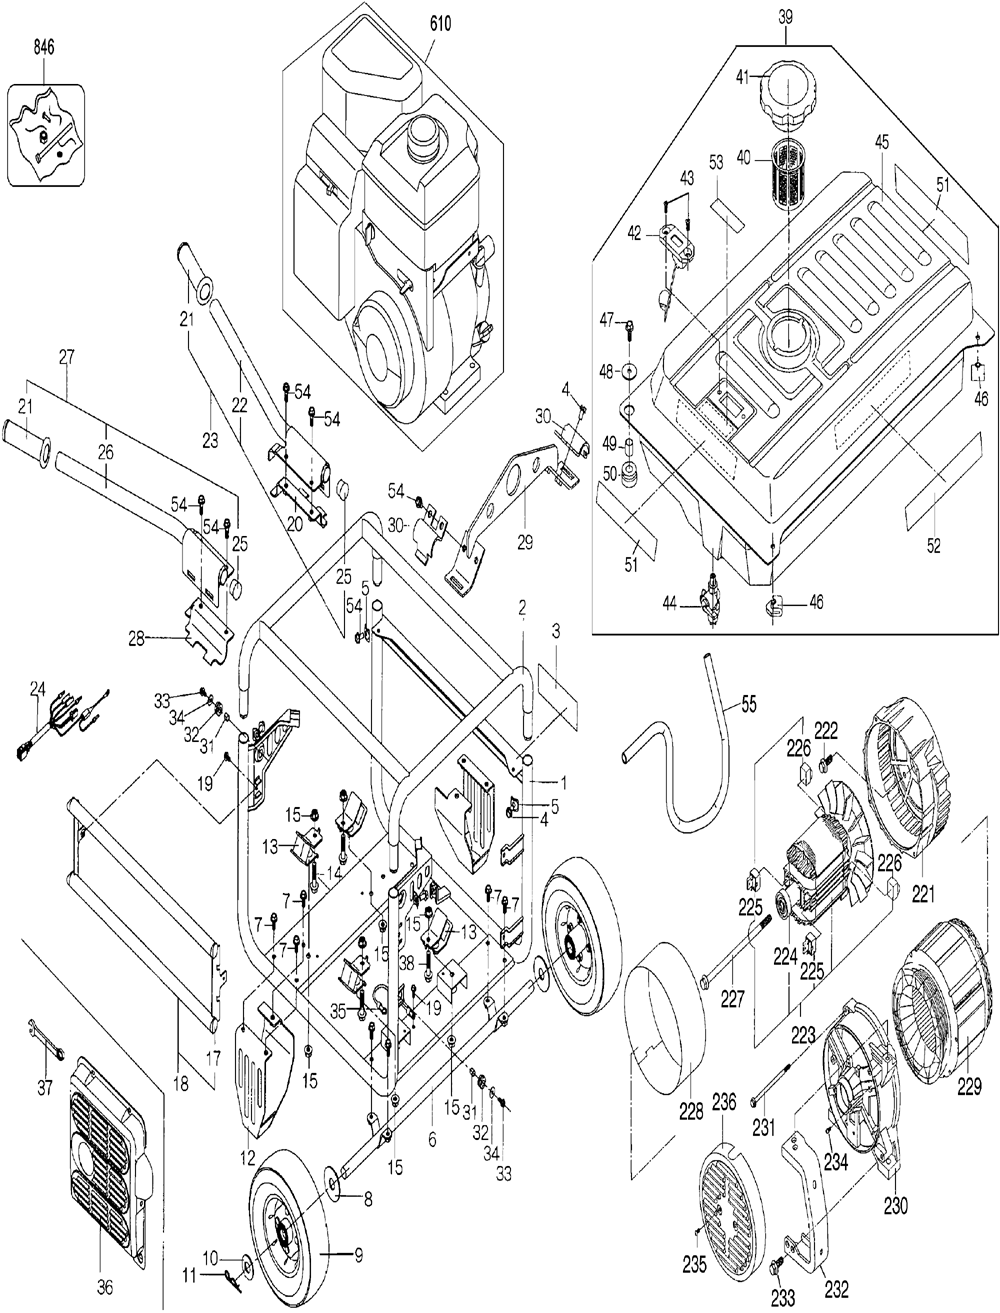 Reciprocating Saw Parts Diagram, Reciprocating, Free